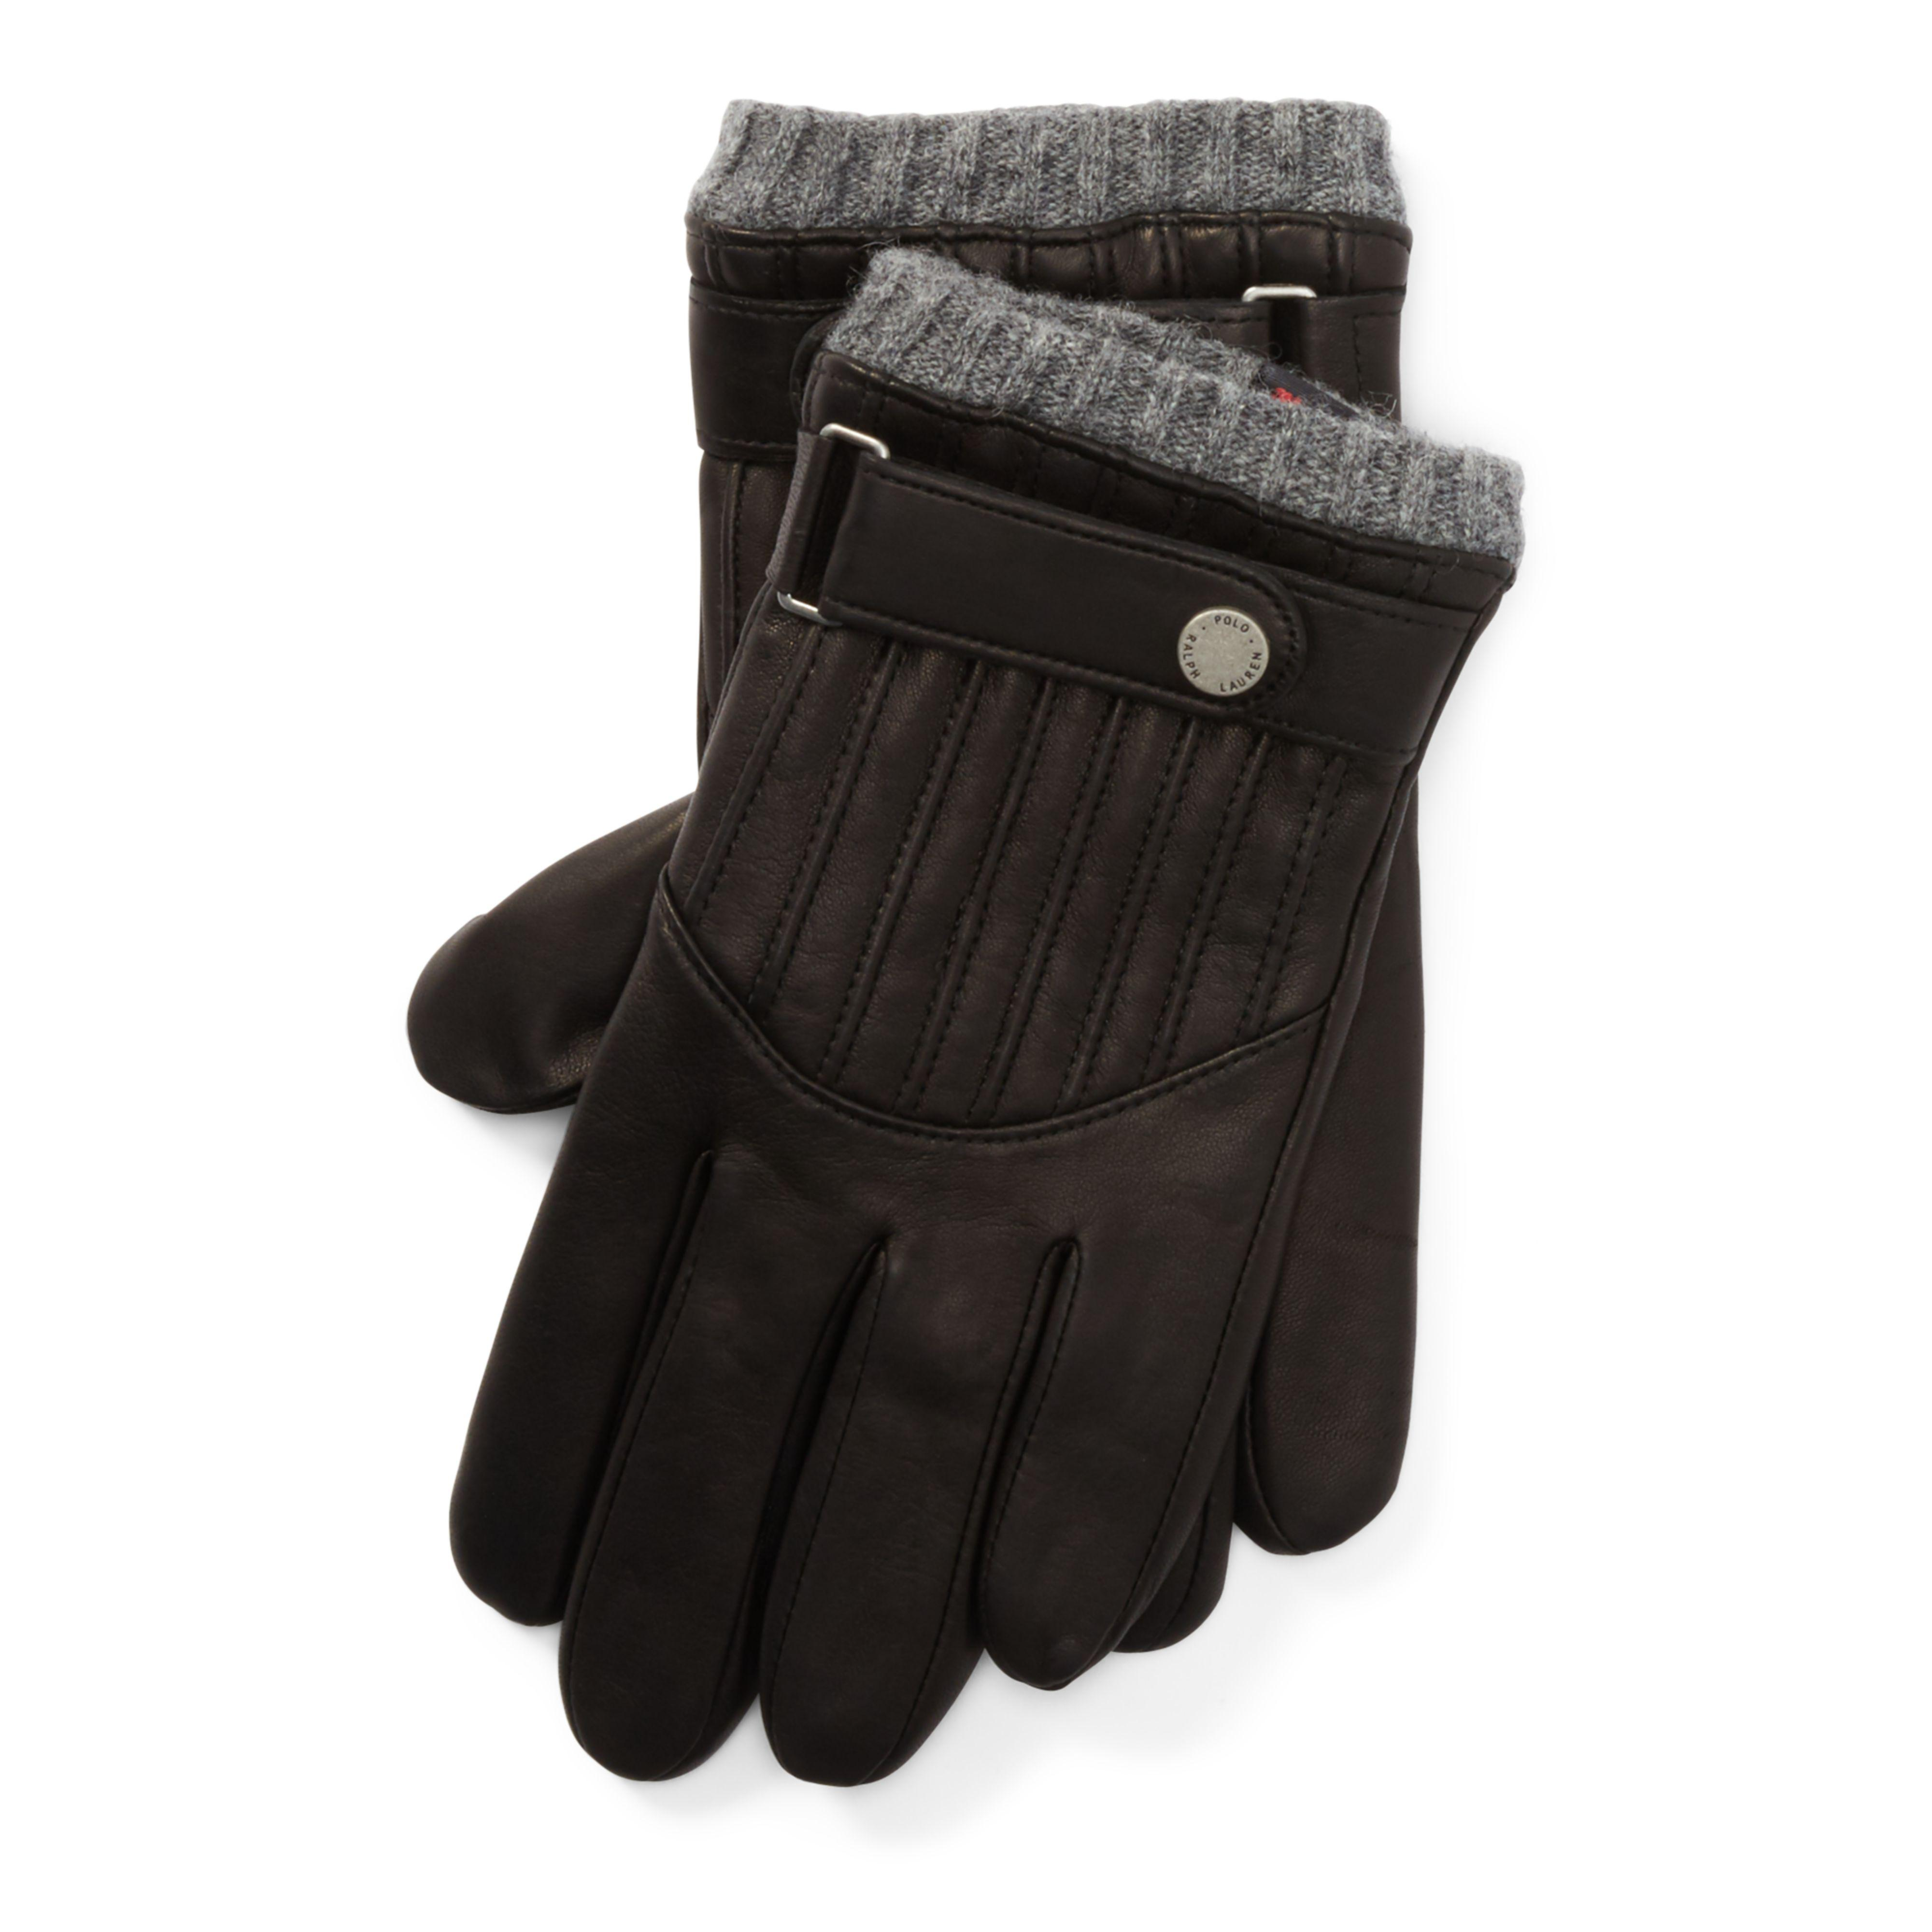 Lyst - Polo ralph lauren Quilted Leather Racing Gloves in Black ... : quilted racing gloves - Adamdwight.com